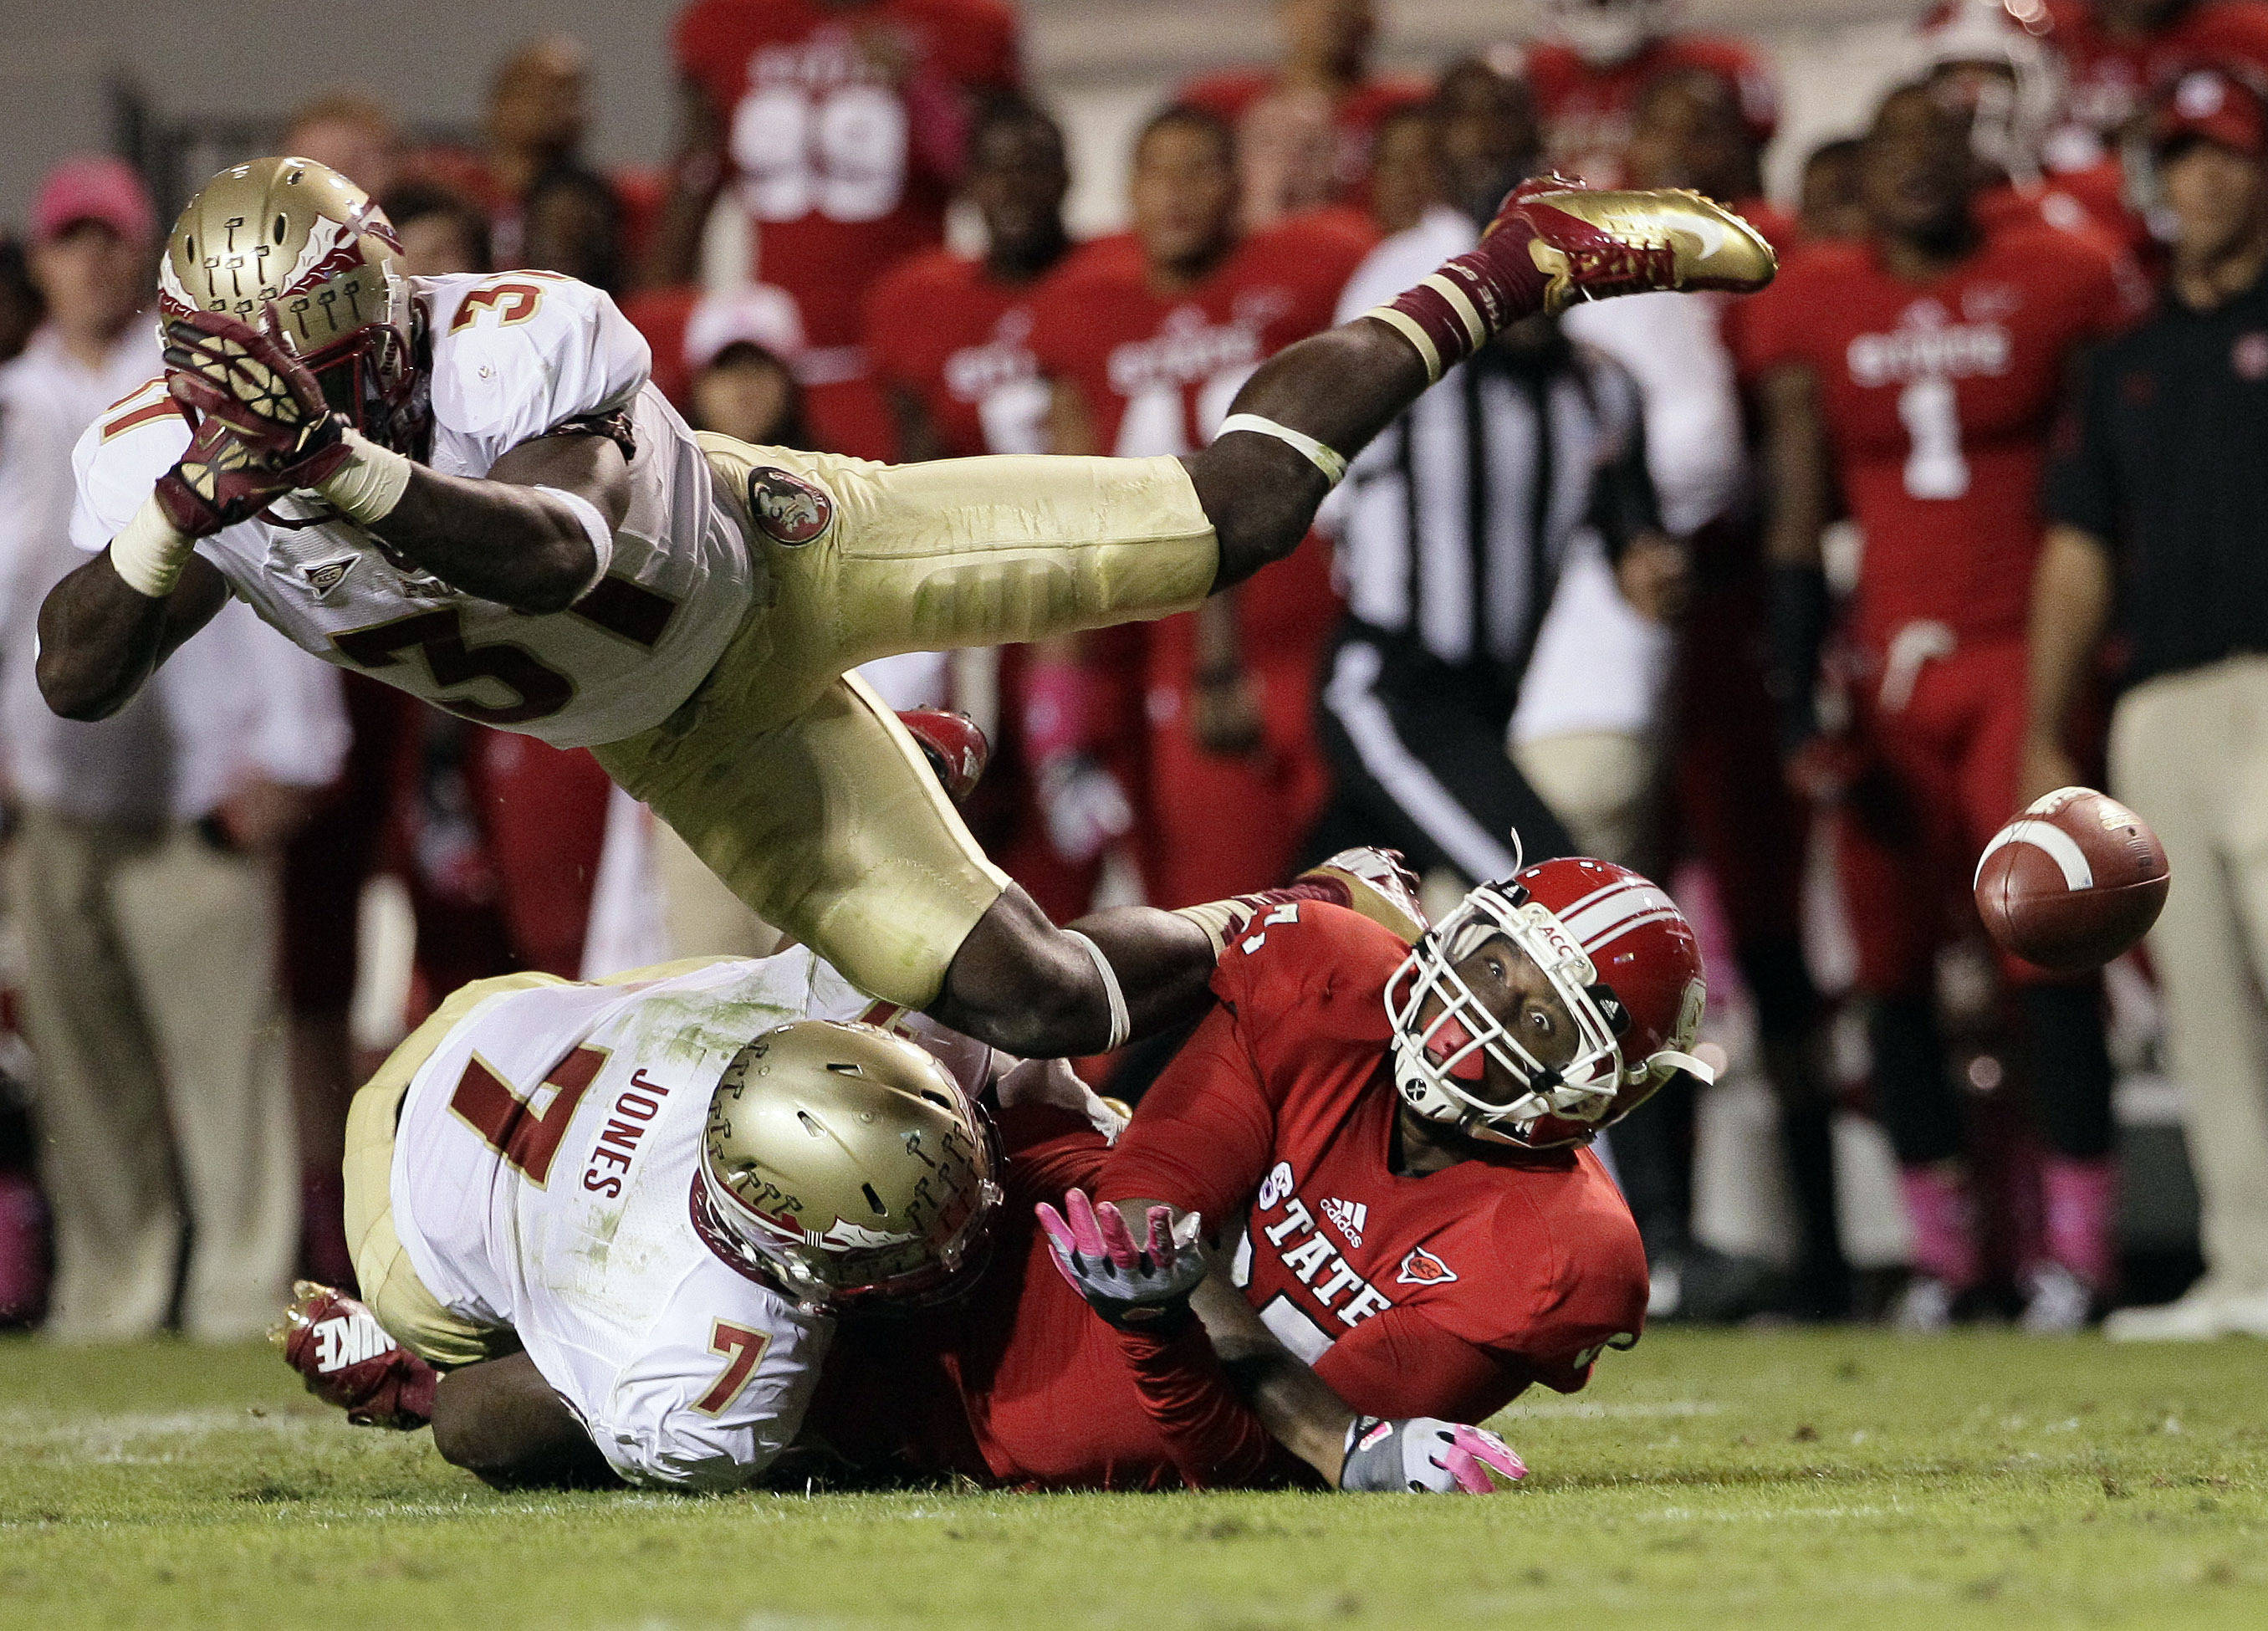 Florida State's Christian Jones (7) and Terrence Brooks break up a pass intended for North Carolina State's Mario Carter during the second half. (AP Photo/Gerry Broome)